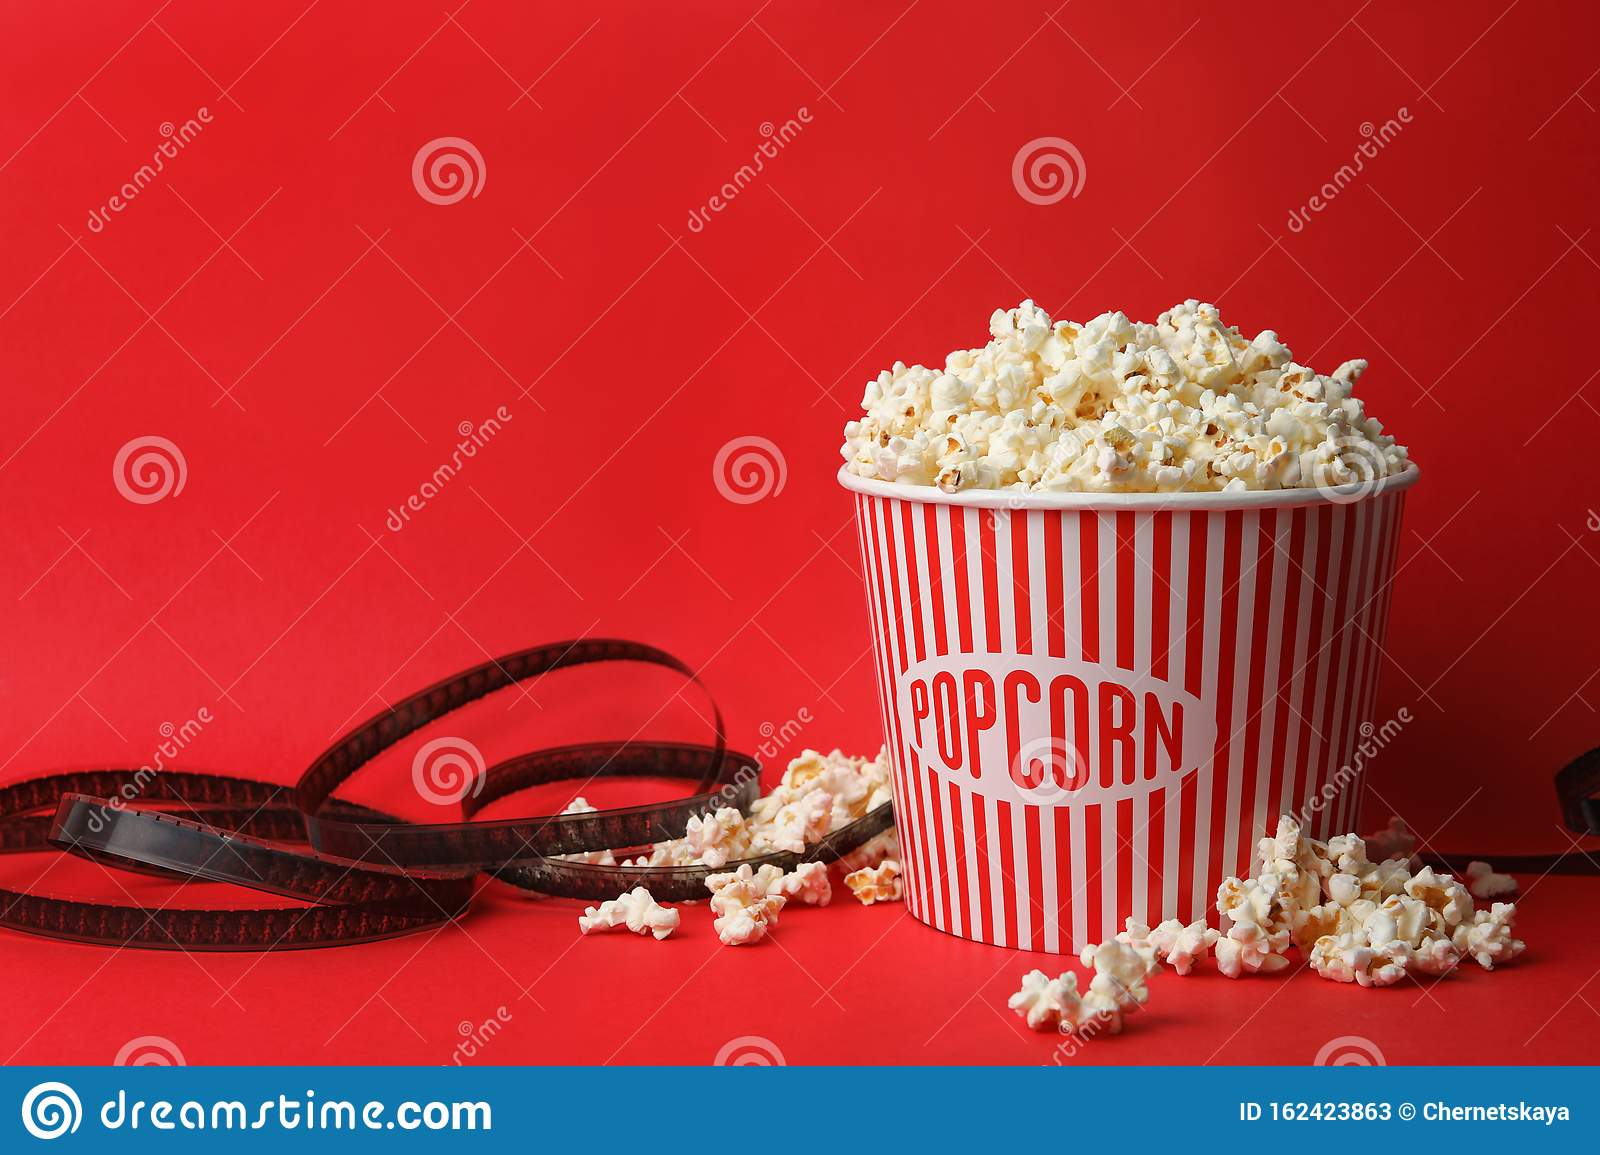 Bucket Of Fresh Popcorn And Film Footage On Background Space For Text Cinema Snack Stock Image Image Of Cinematography Space 162423863